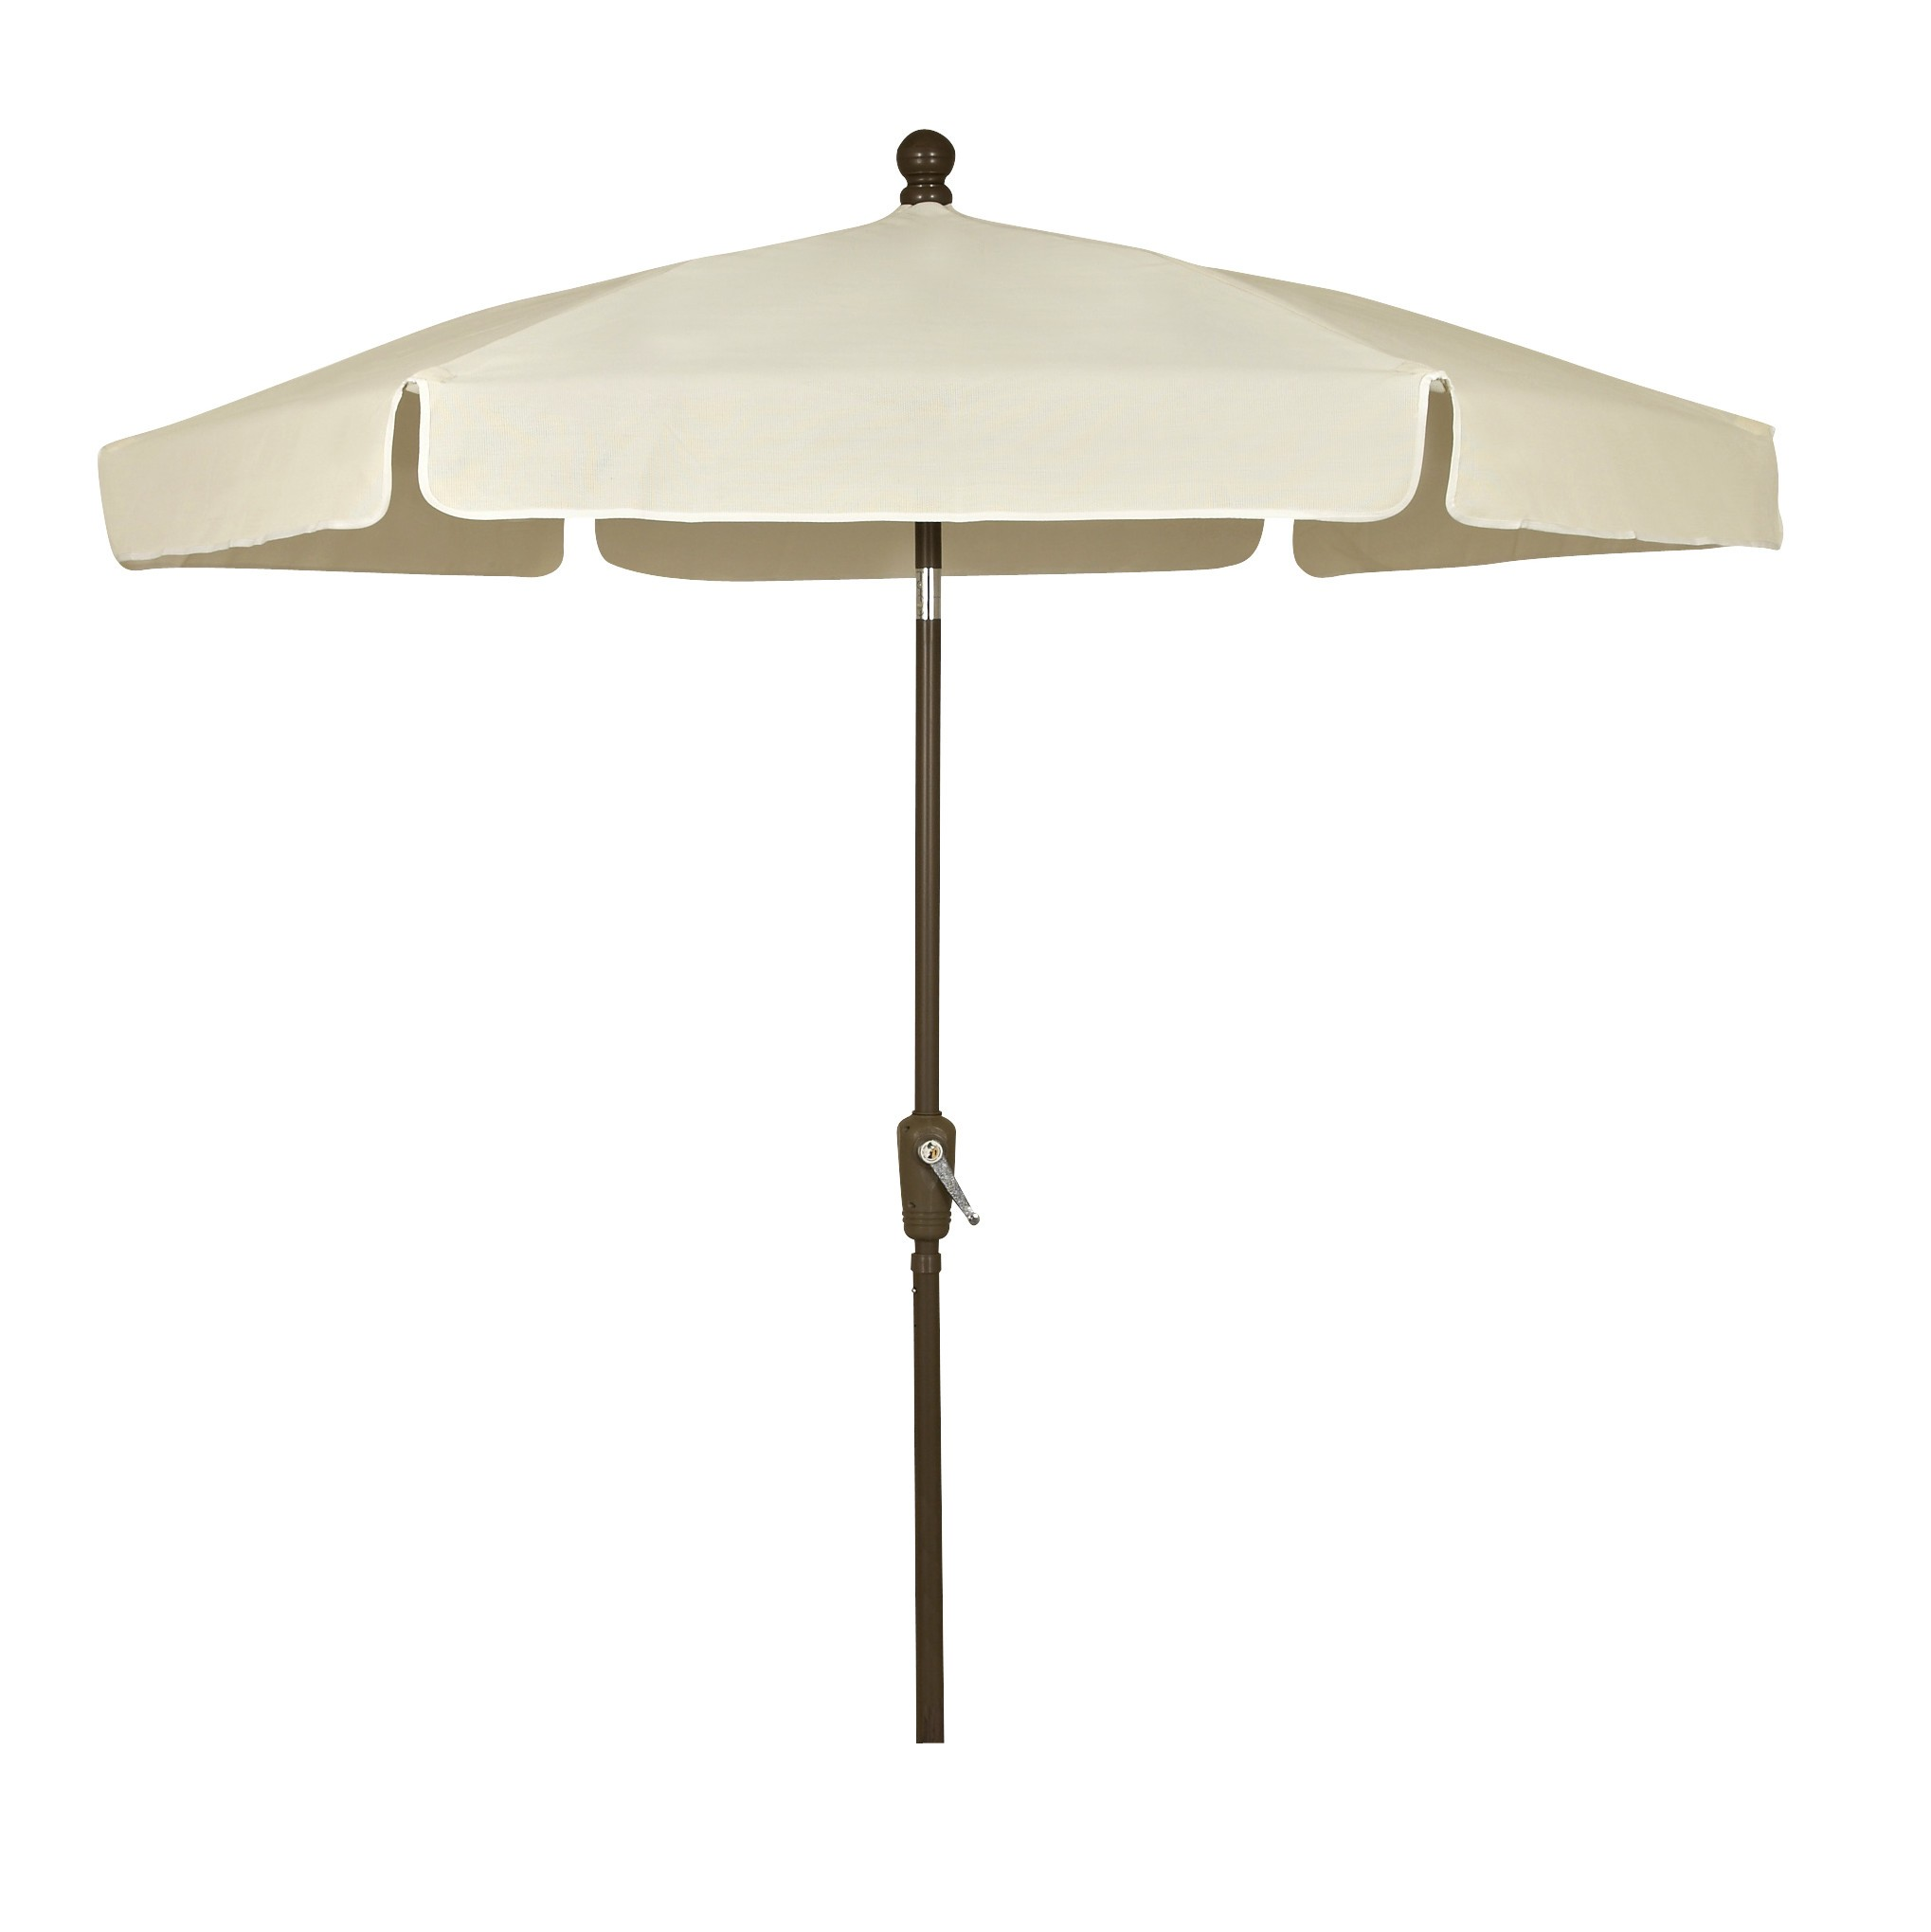 sun balcony screw on umbrella itm garden clamp parasol shade protection uv chair clip sunshade